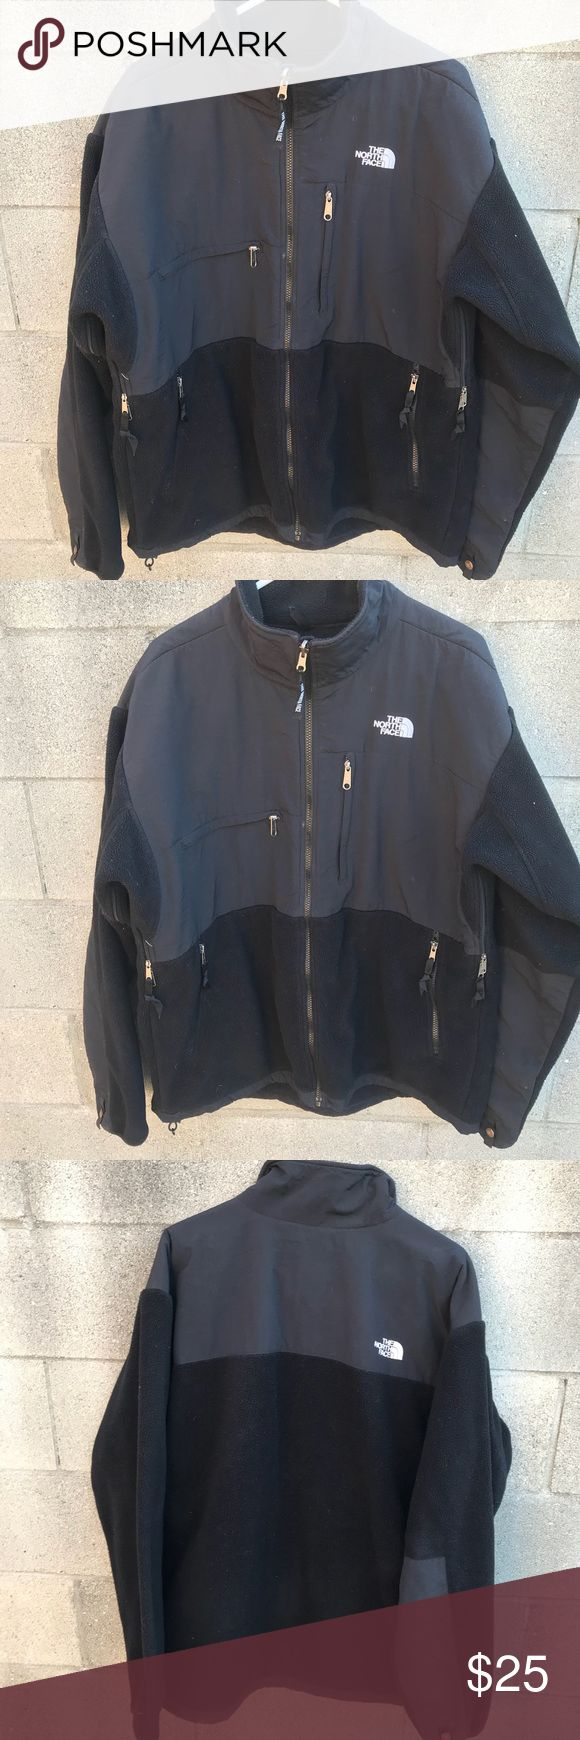 North face men's jacket The north face men jacket Size Xl Black No stains or rips  Length 31 Armpit to armpit 27 Shoulder to shoulder 21 Arm length from shoulder 33 North Face Jackets & Coats